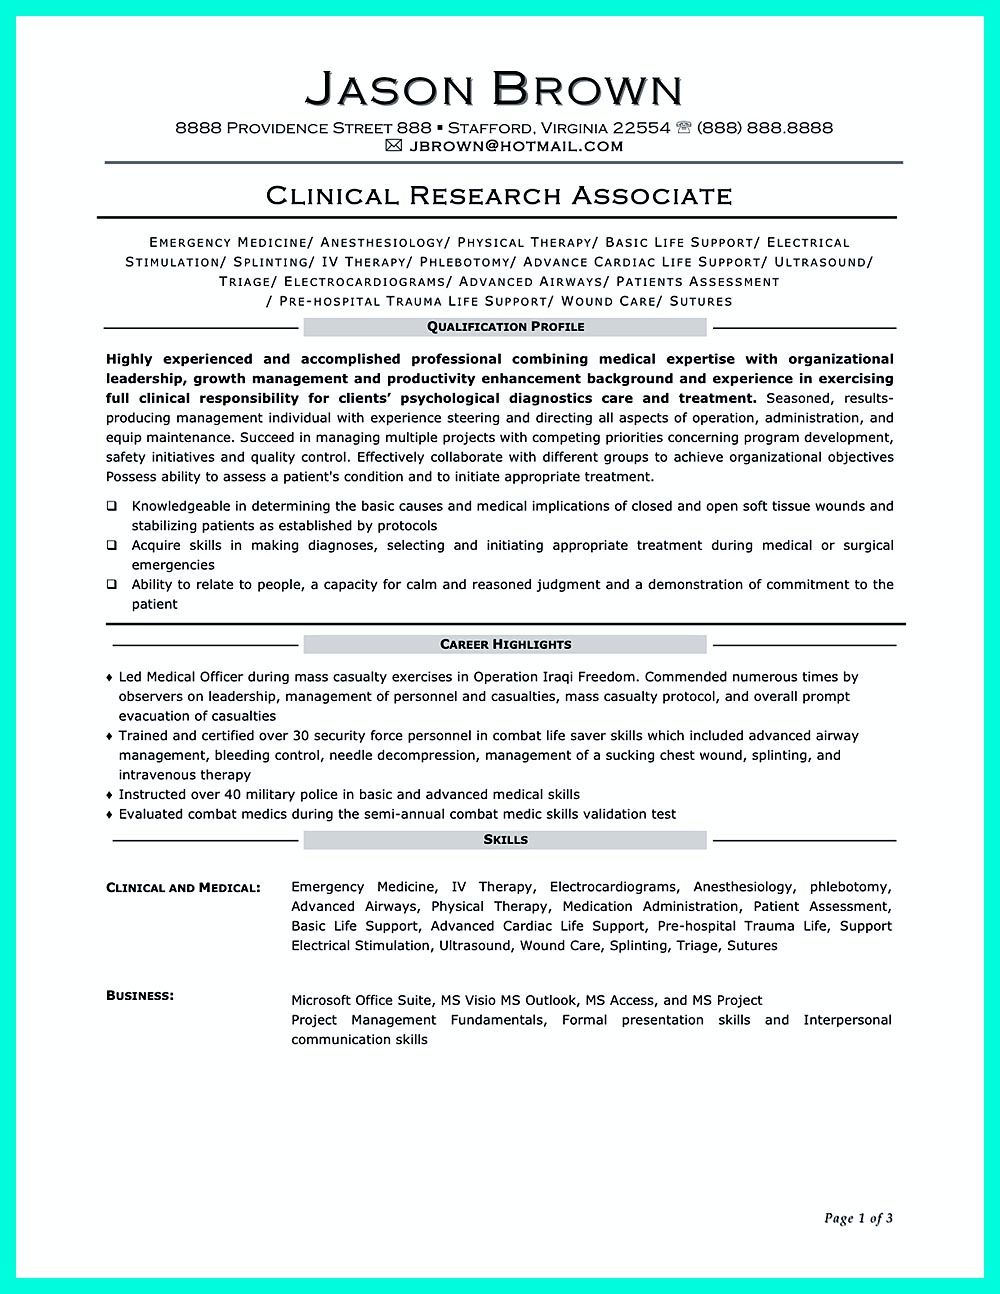 making clinical research associate resume is sometimes not easy but do not worry since there are a lot of clinical research associate resume samples - Objective Resume Example